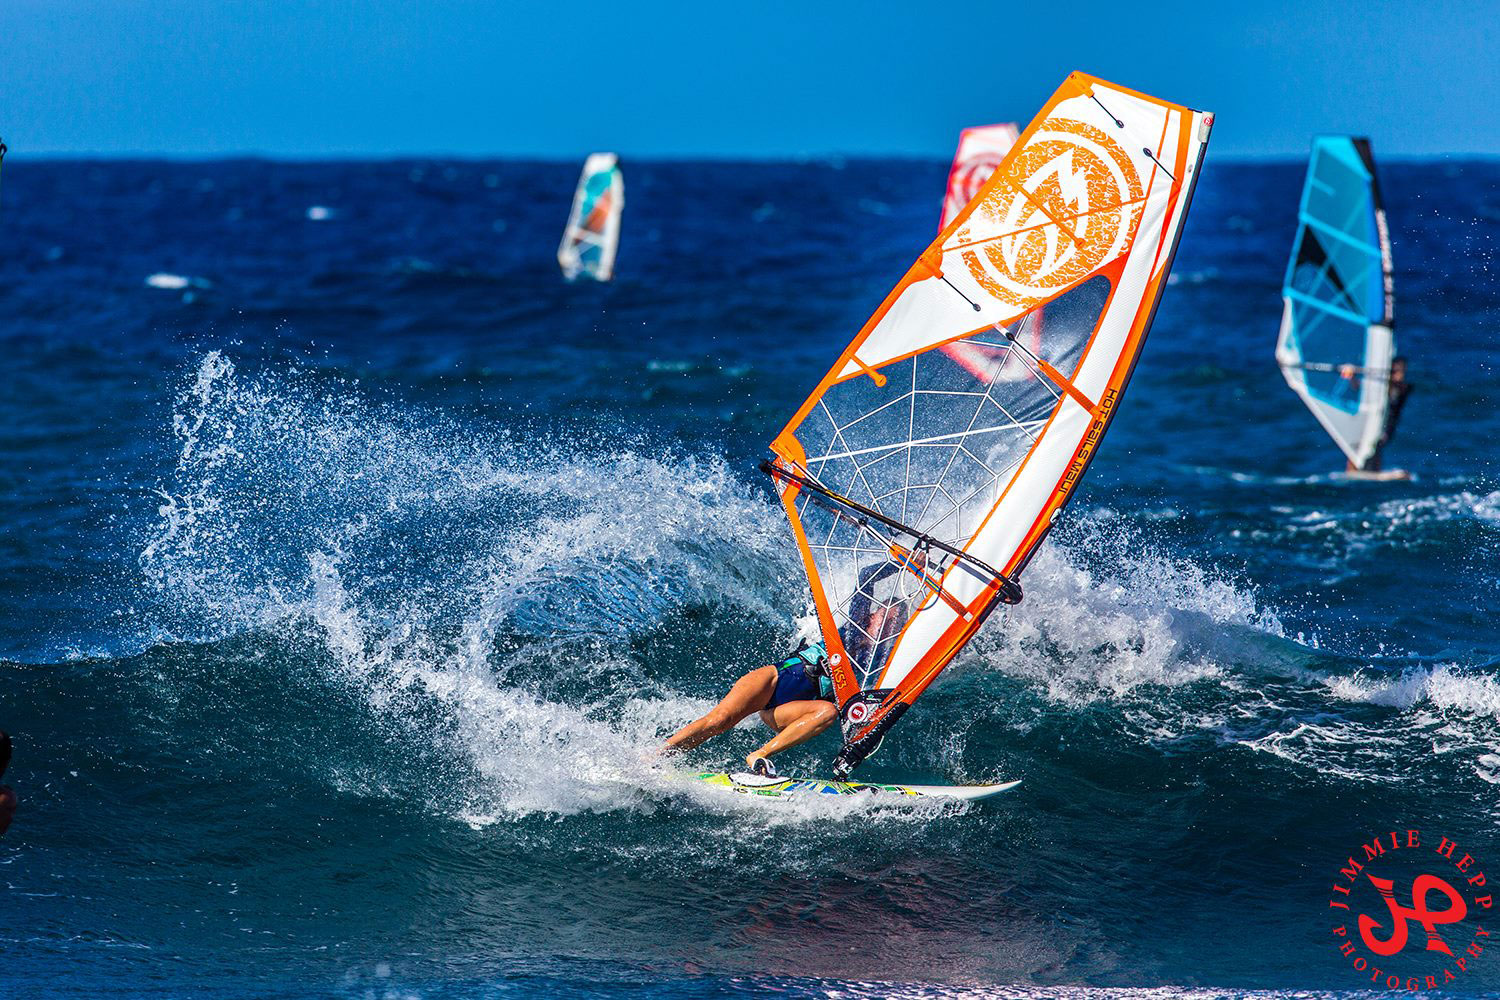 Amanda Beenen windsurfing on her Hot Sails Maui